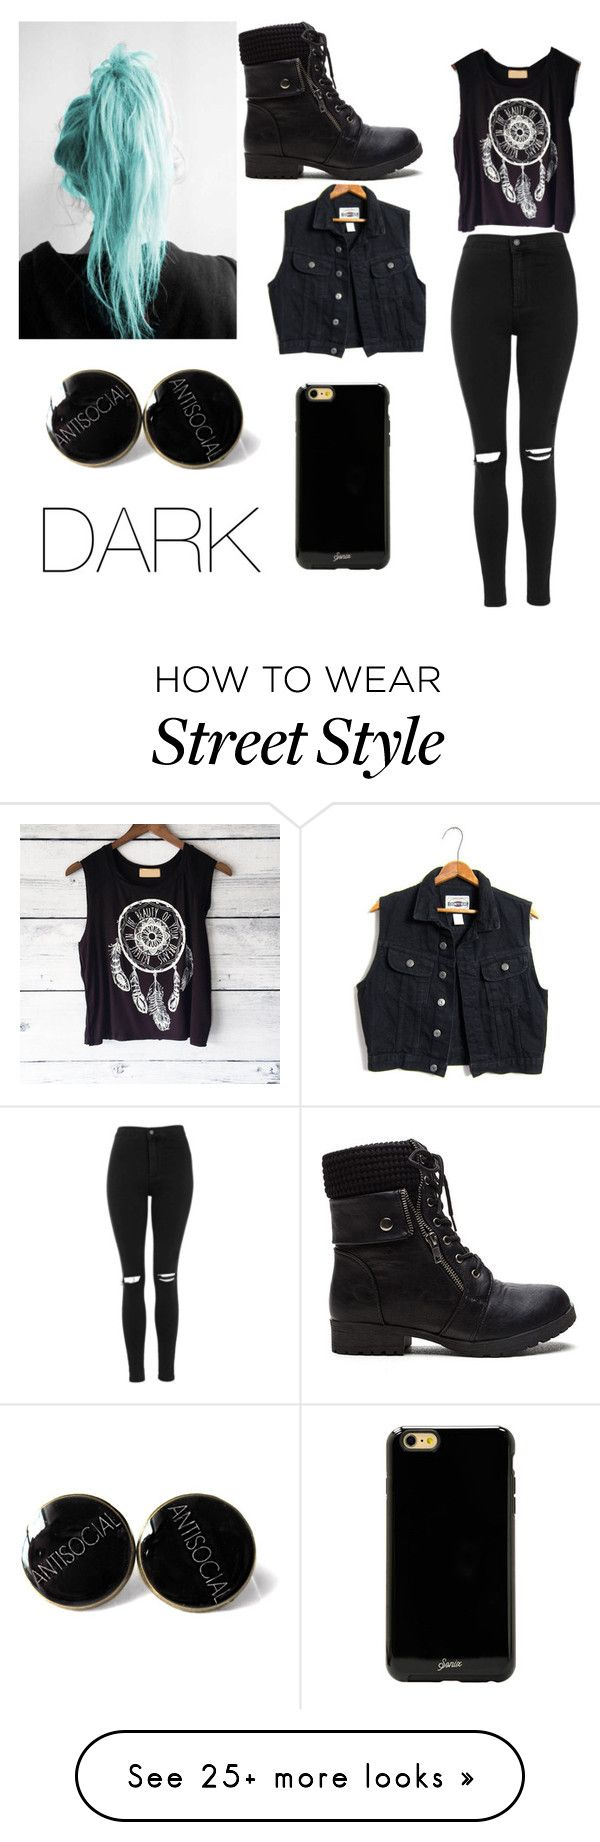 """Darker casual"" by army-kylee on Polyvore featuring mode, Topshop en Sonix"